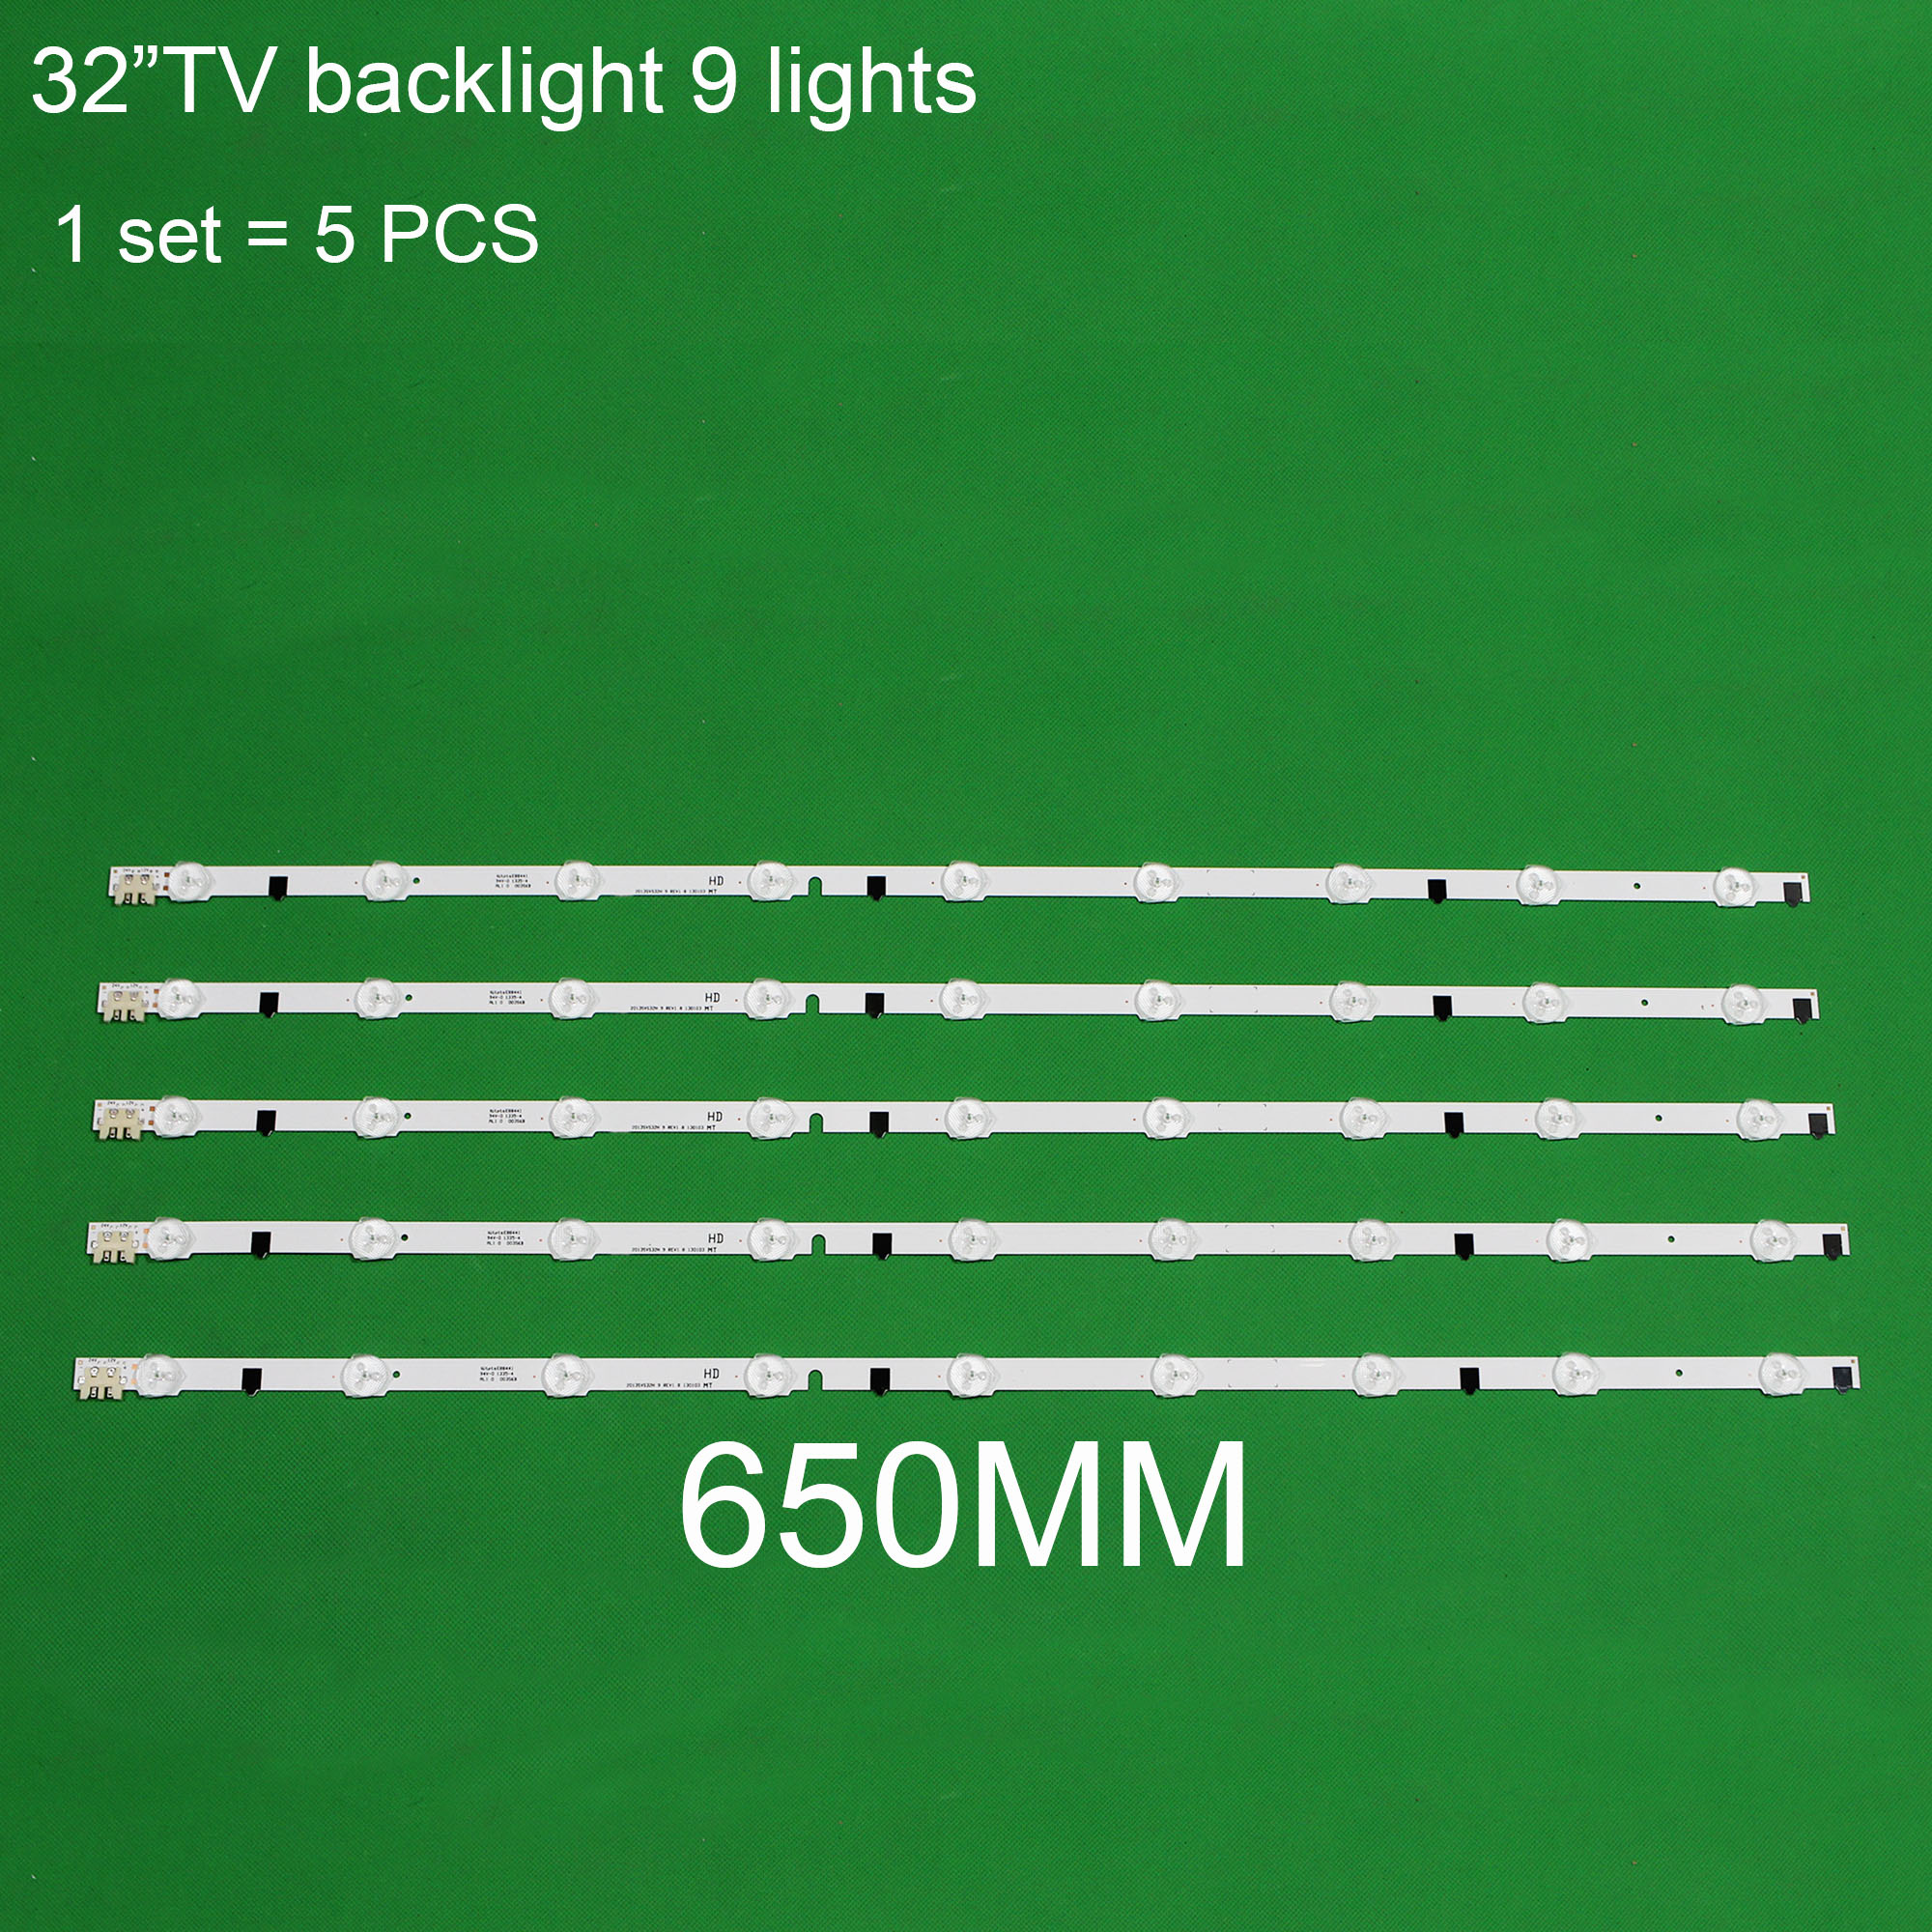 650mm LED Backlight Lamp strip 9 leds For Sam Sung 32'' TV BN96-25300A UA32F4088 2013SVS32H D2GE-320SC0-R3 <font><b>HF320CSA</b></font>-<font><b>B1</b></font> image